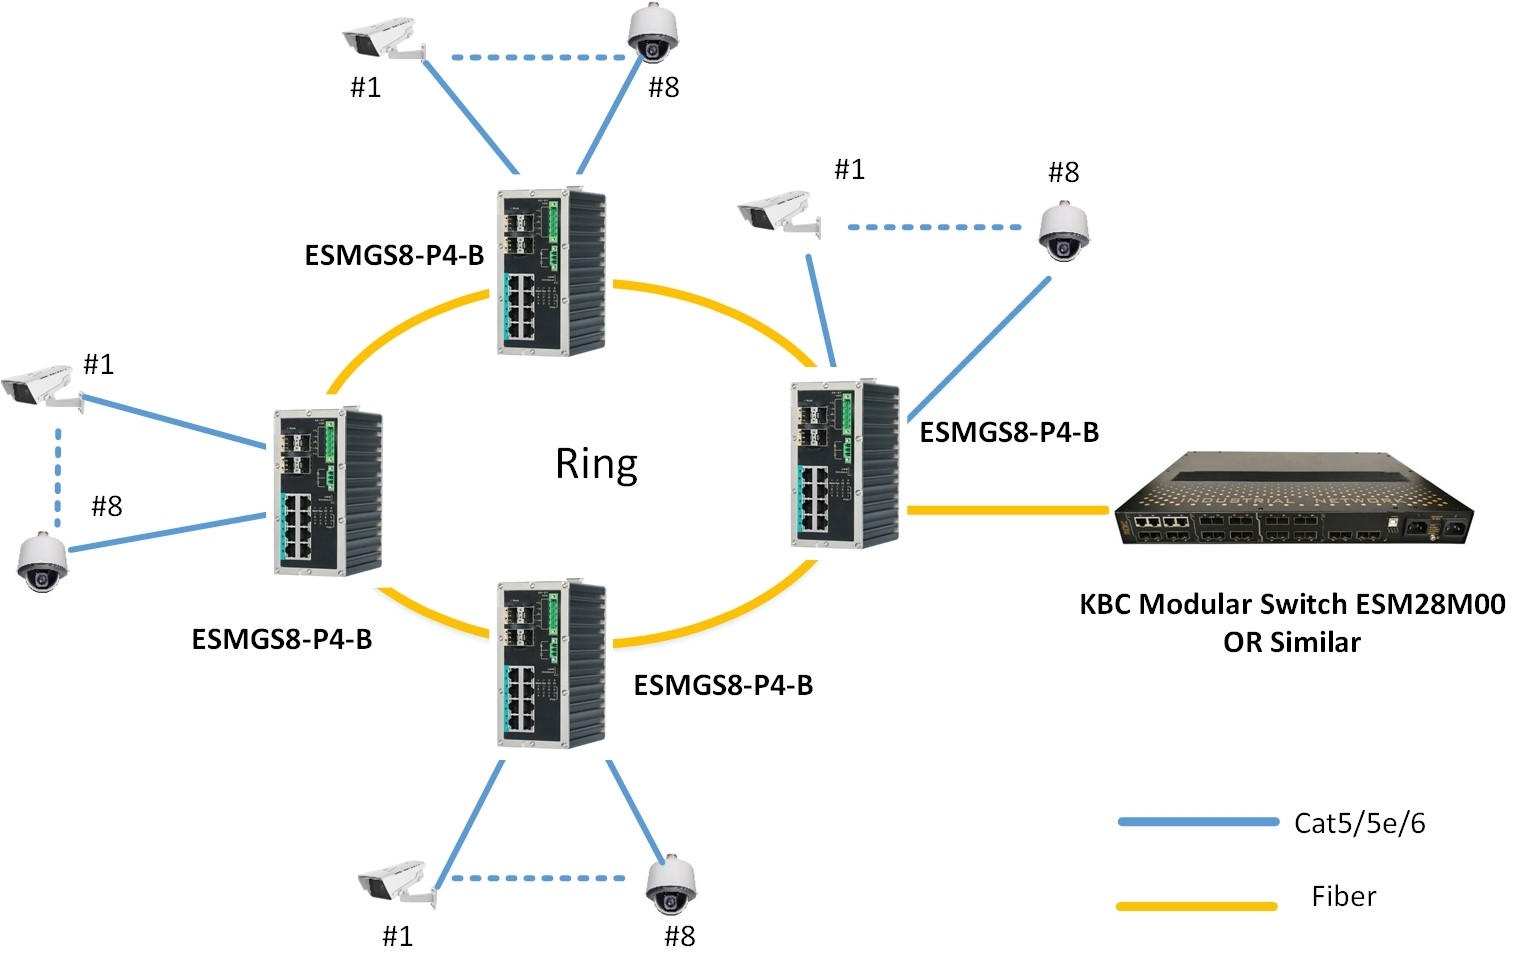 Typical System configuration for ESMGS8-P4-B